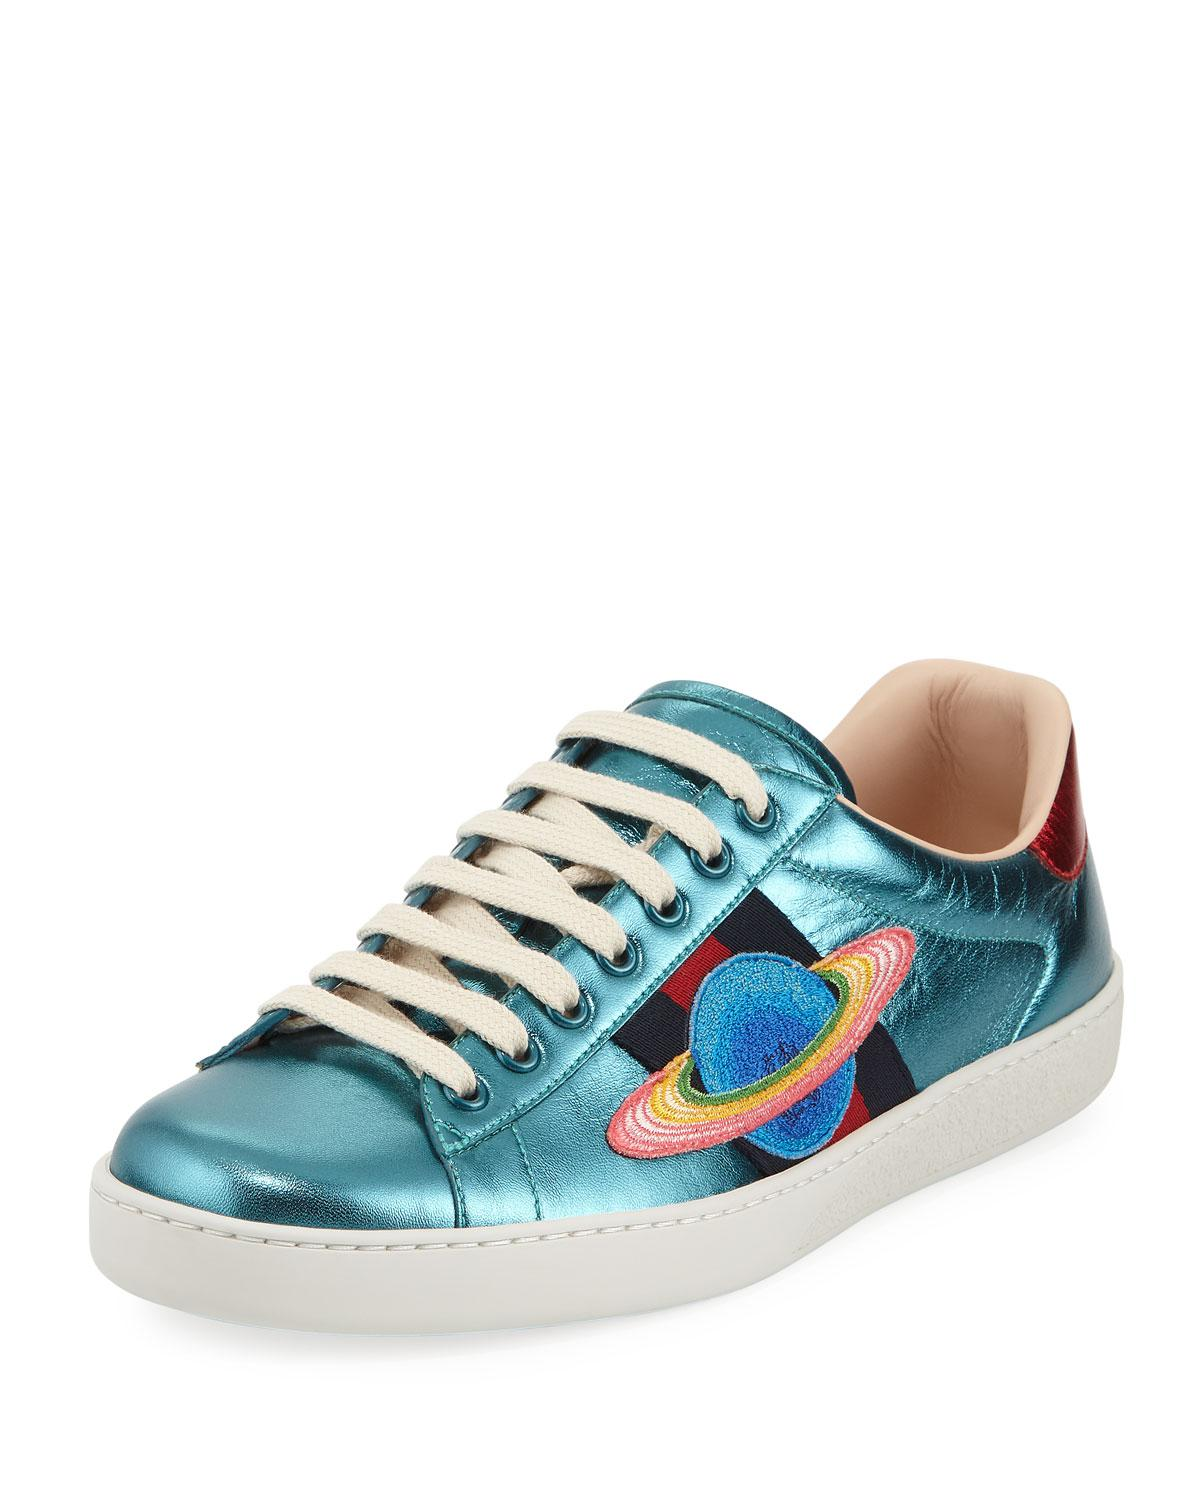 Mens More Metallic Leather Sneakers Gucci